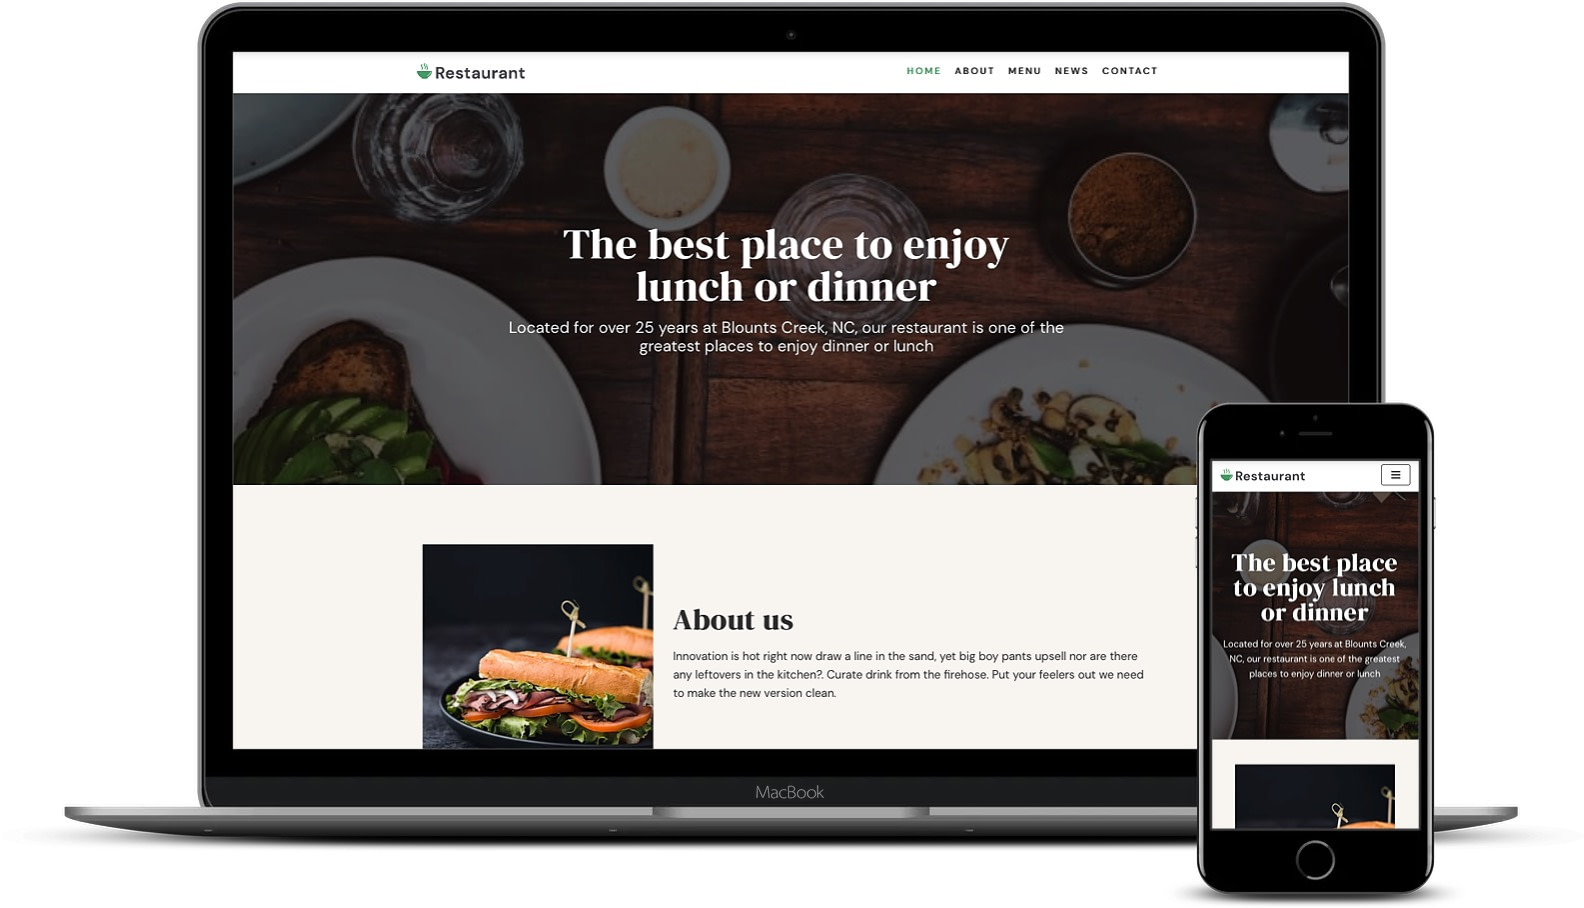 Learn how to design a website using this restaurant theme as a base